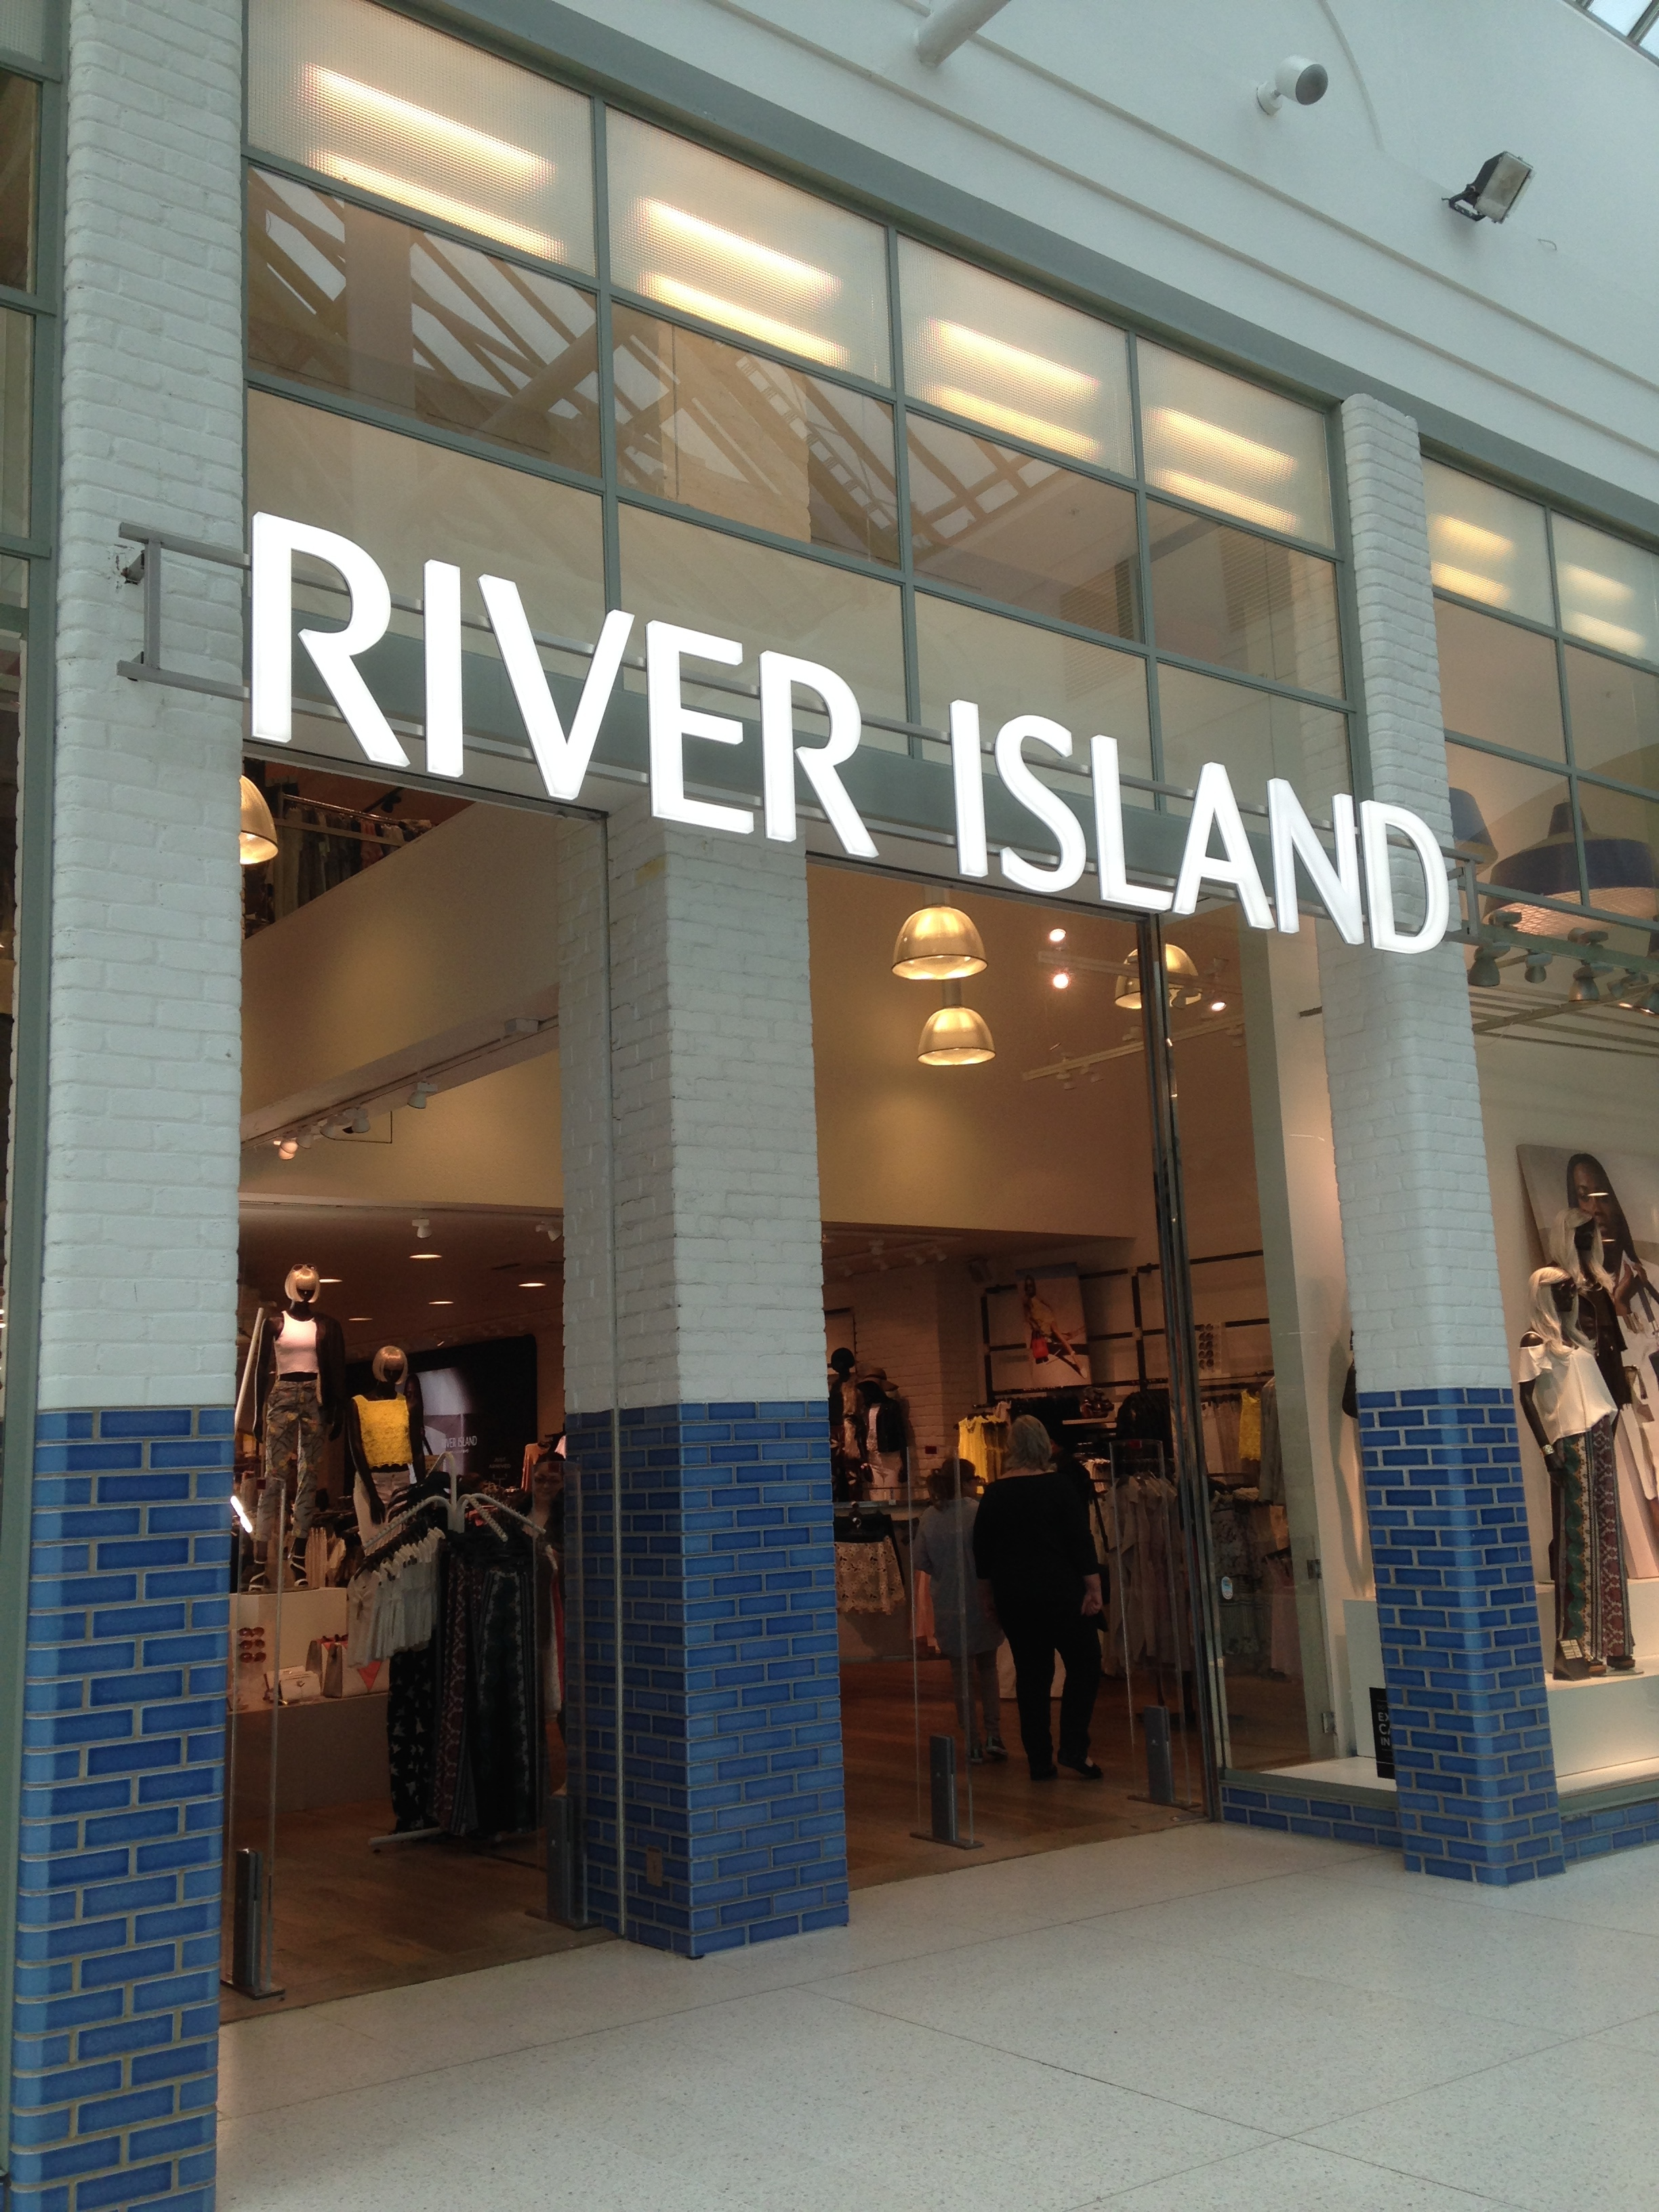 River Island Illuminated LED facia sign